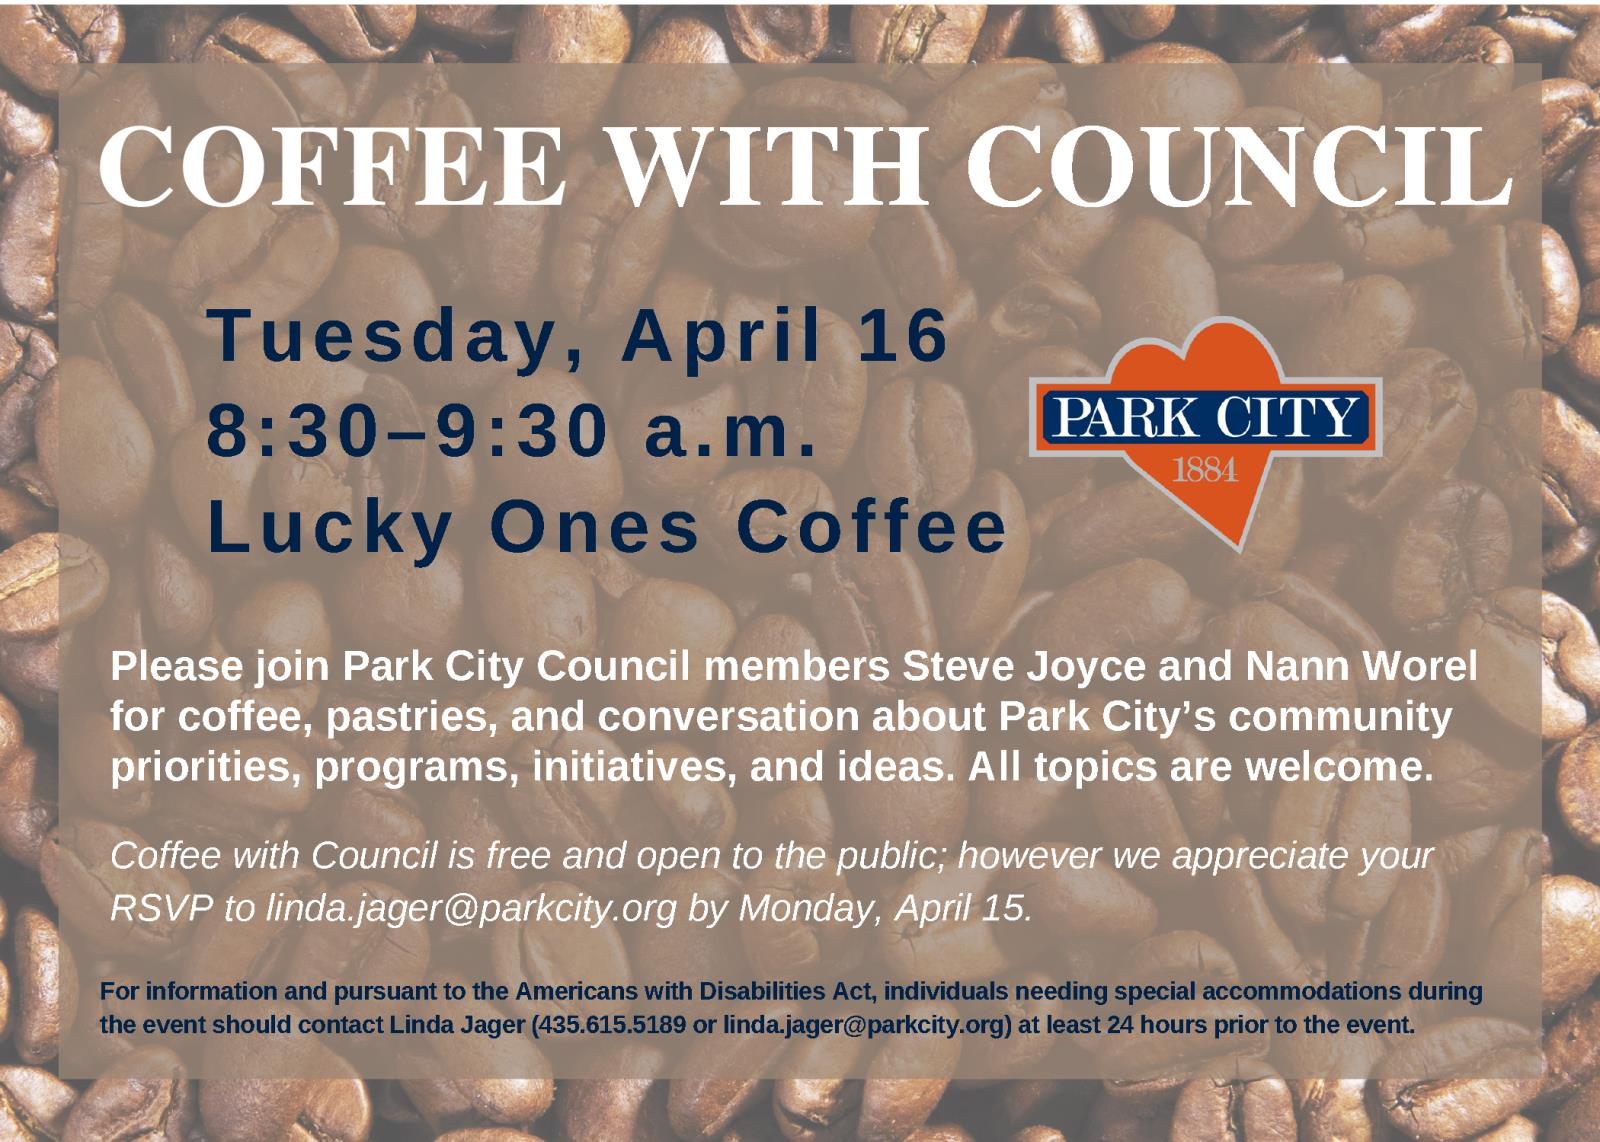 COFFEE WITH COUNCIL_4.16.19